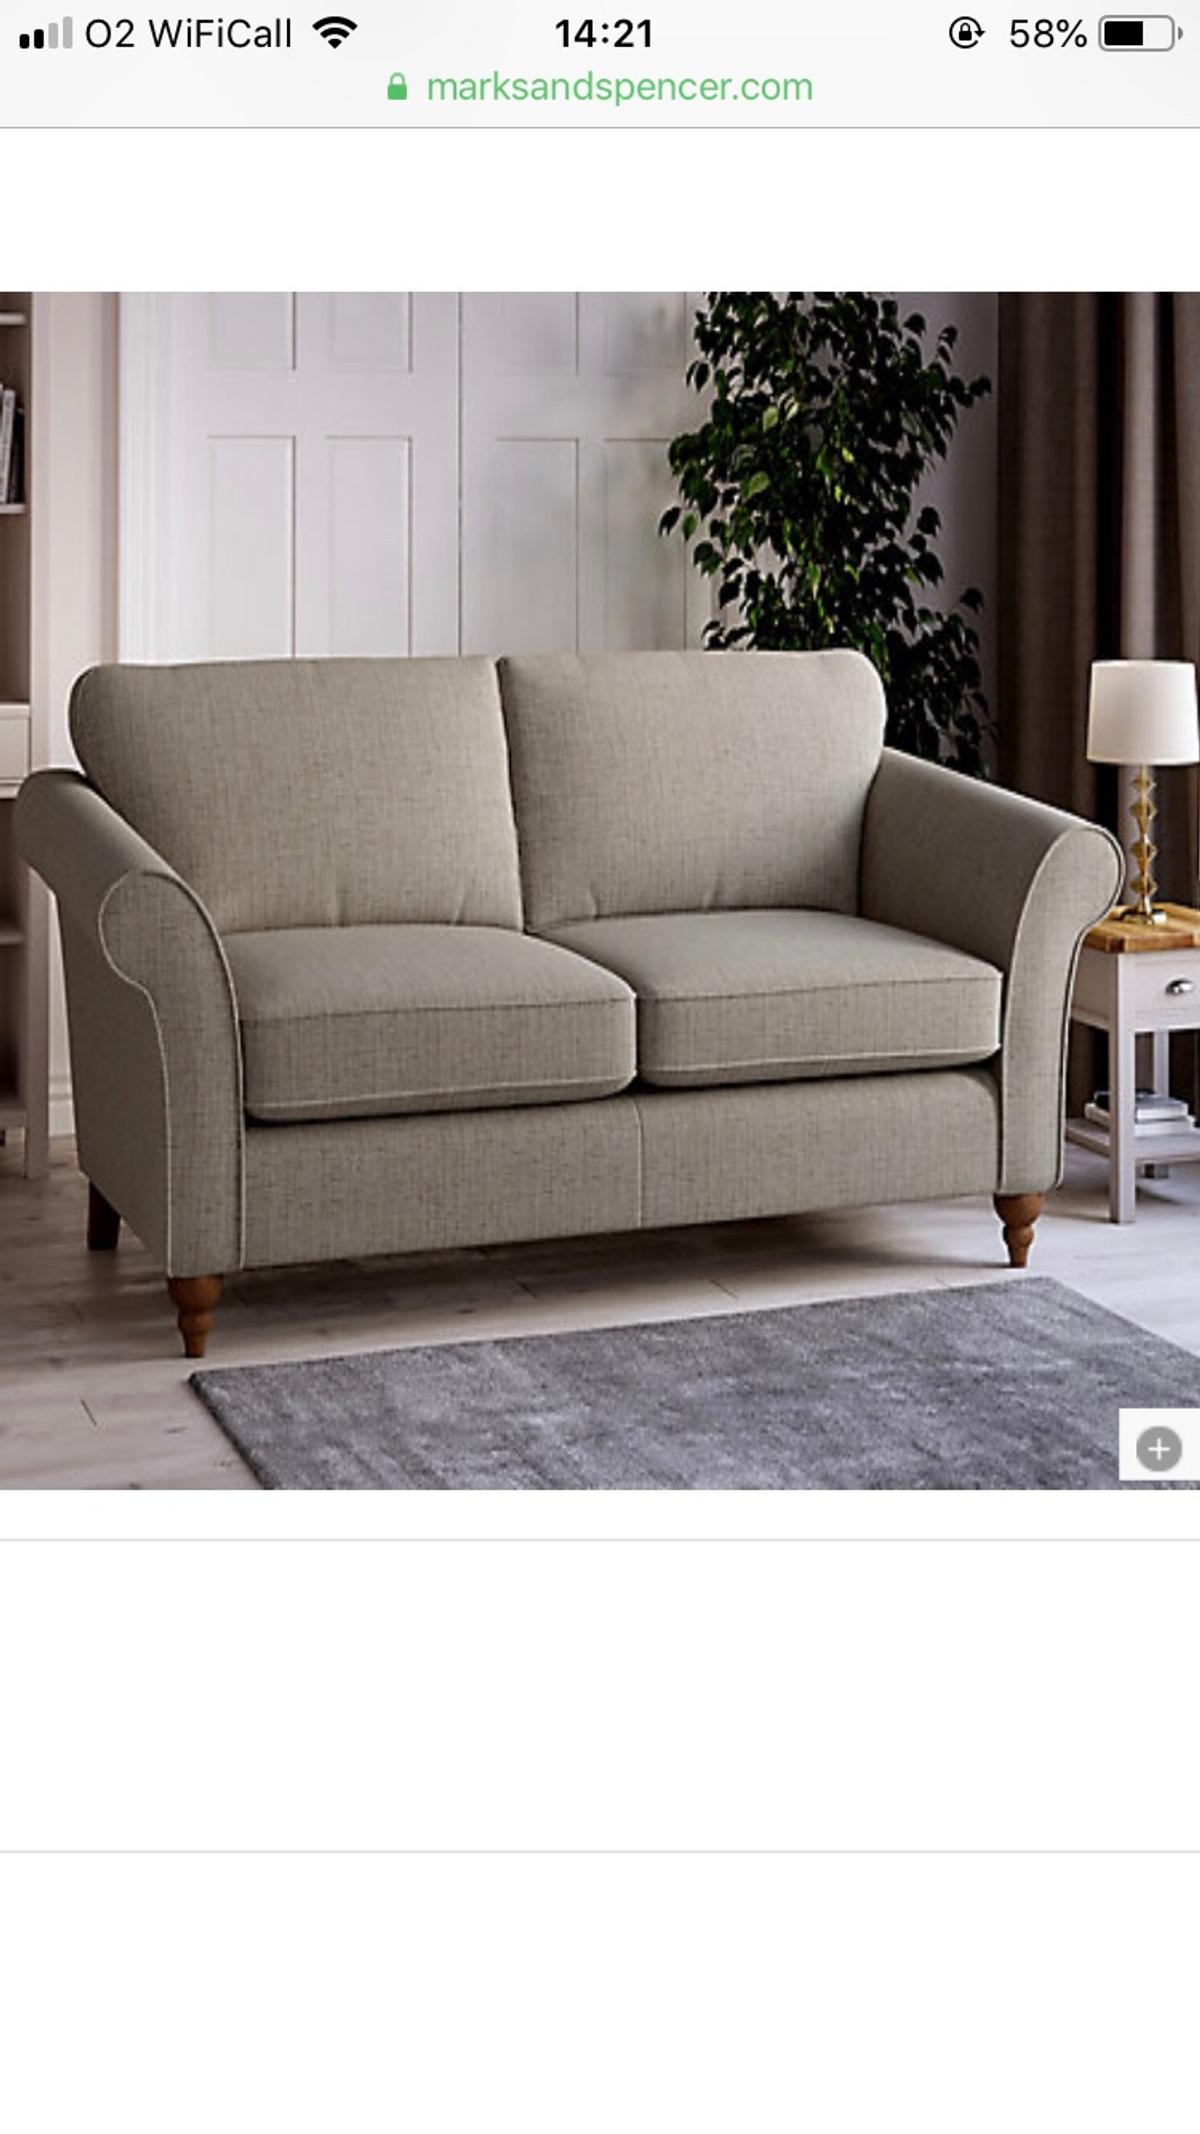 M S Somerset Sofas In M34 Tameside For